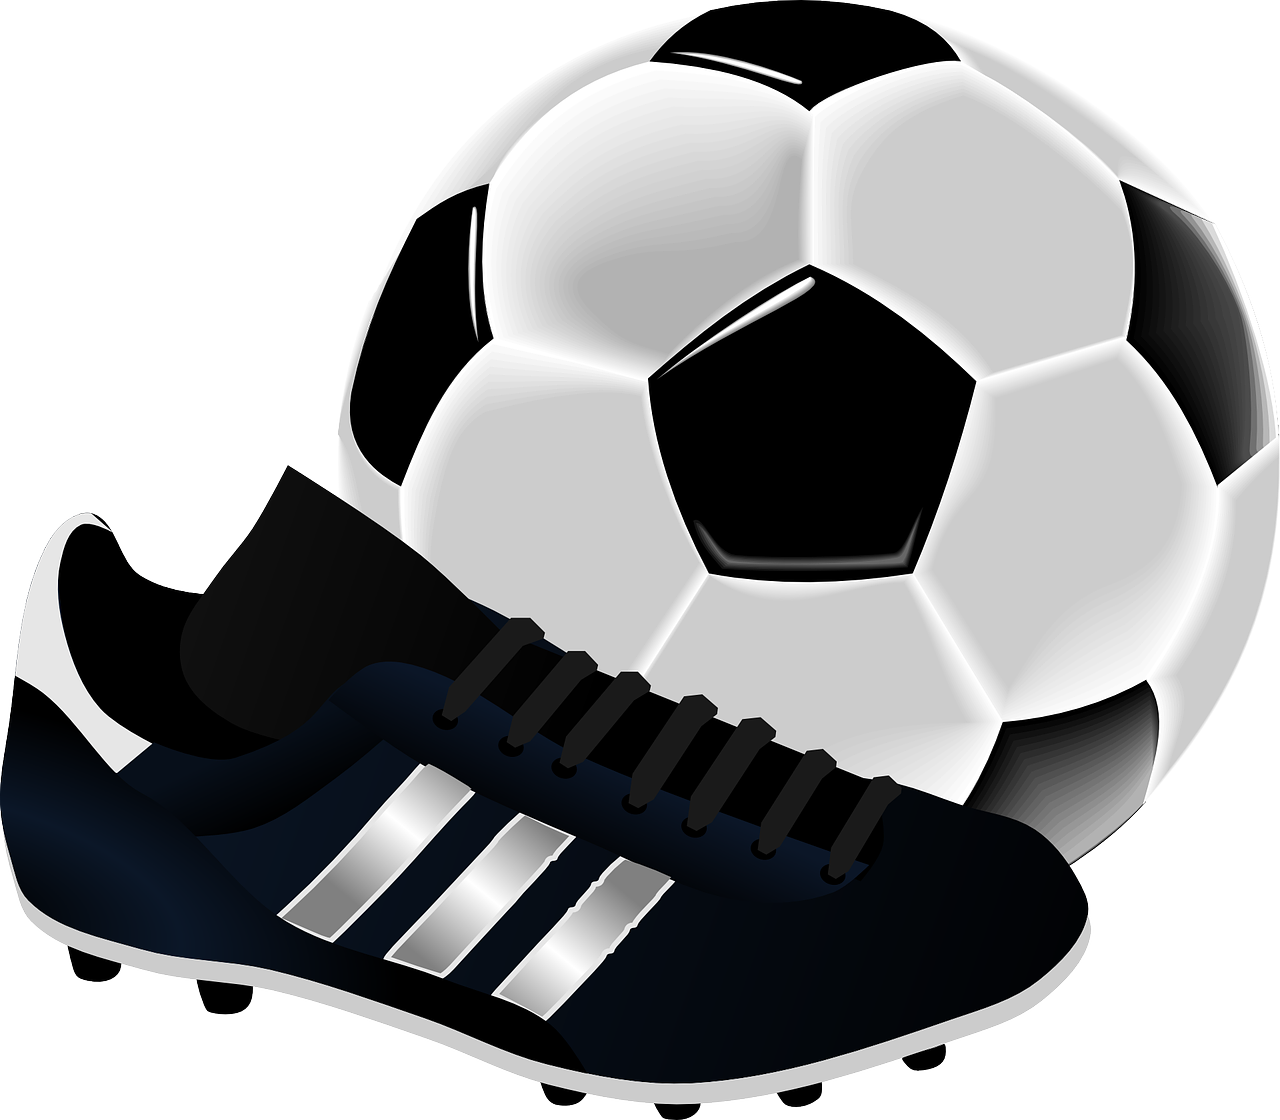 A shoe in front of a football